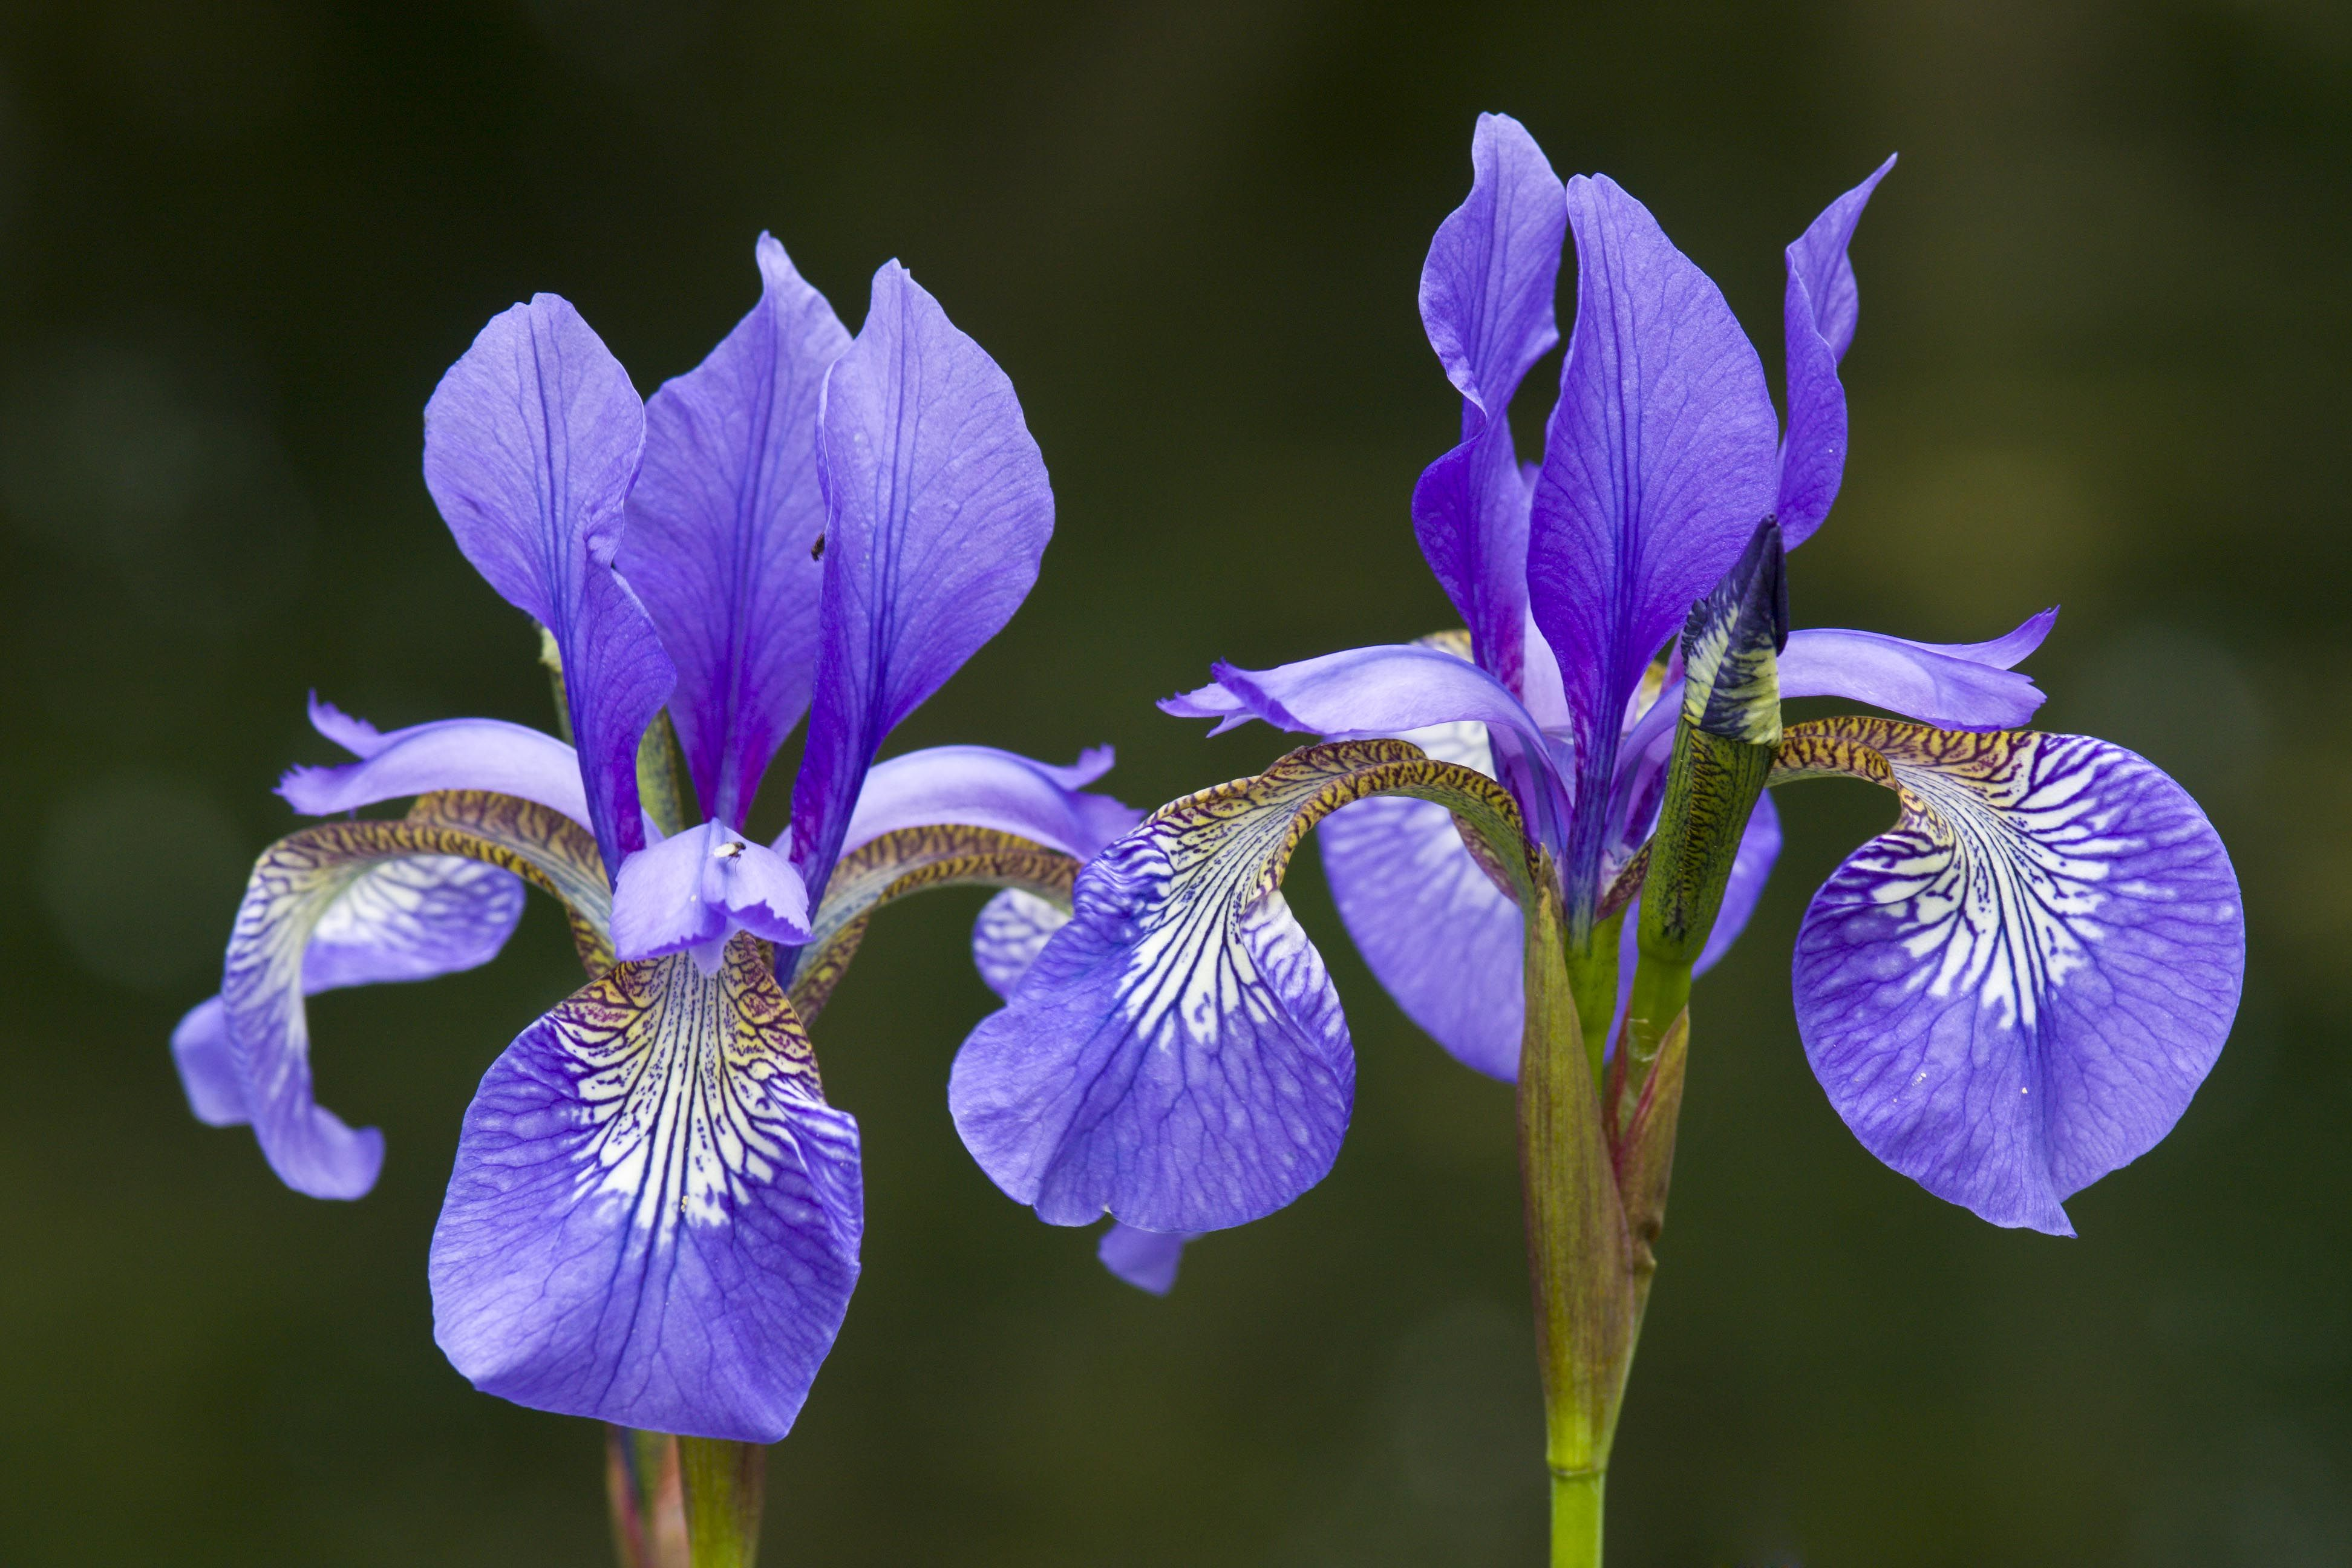 Pin By Janeen Agricola On Iris Flower Pinterest Iris Flowers